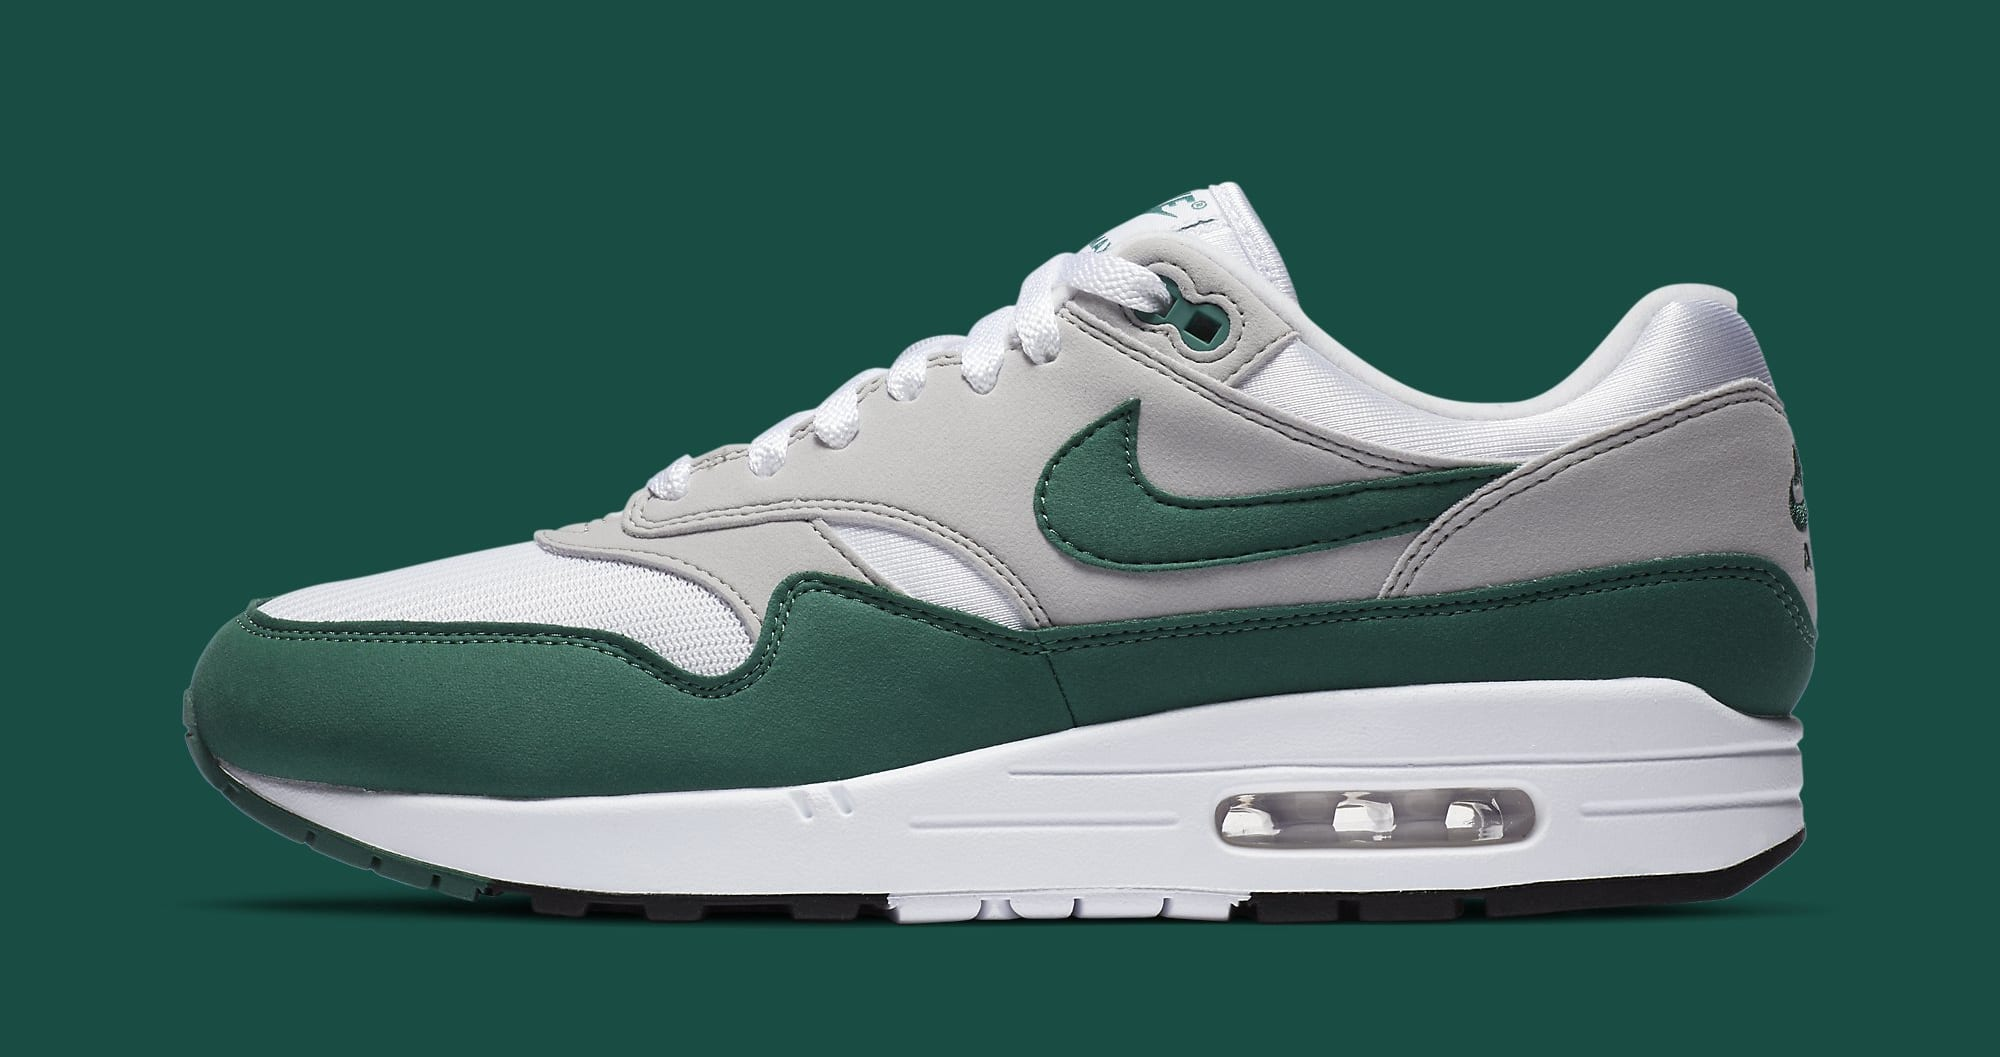 Nike Air Max 1 'Evergreen Aura' DC1454-100 Lateral